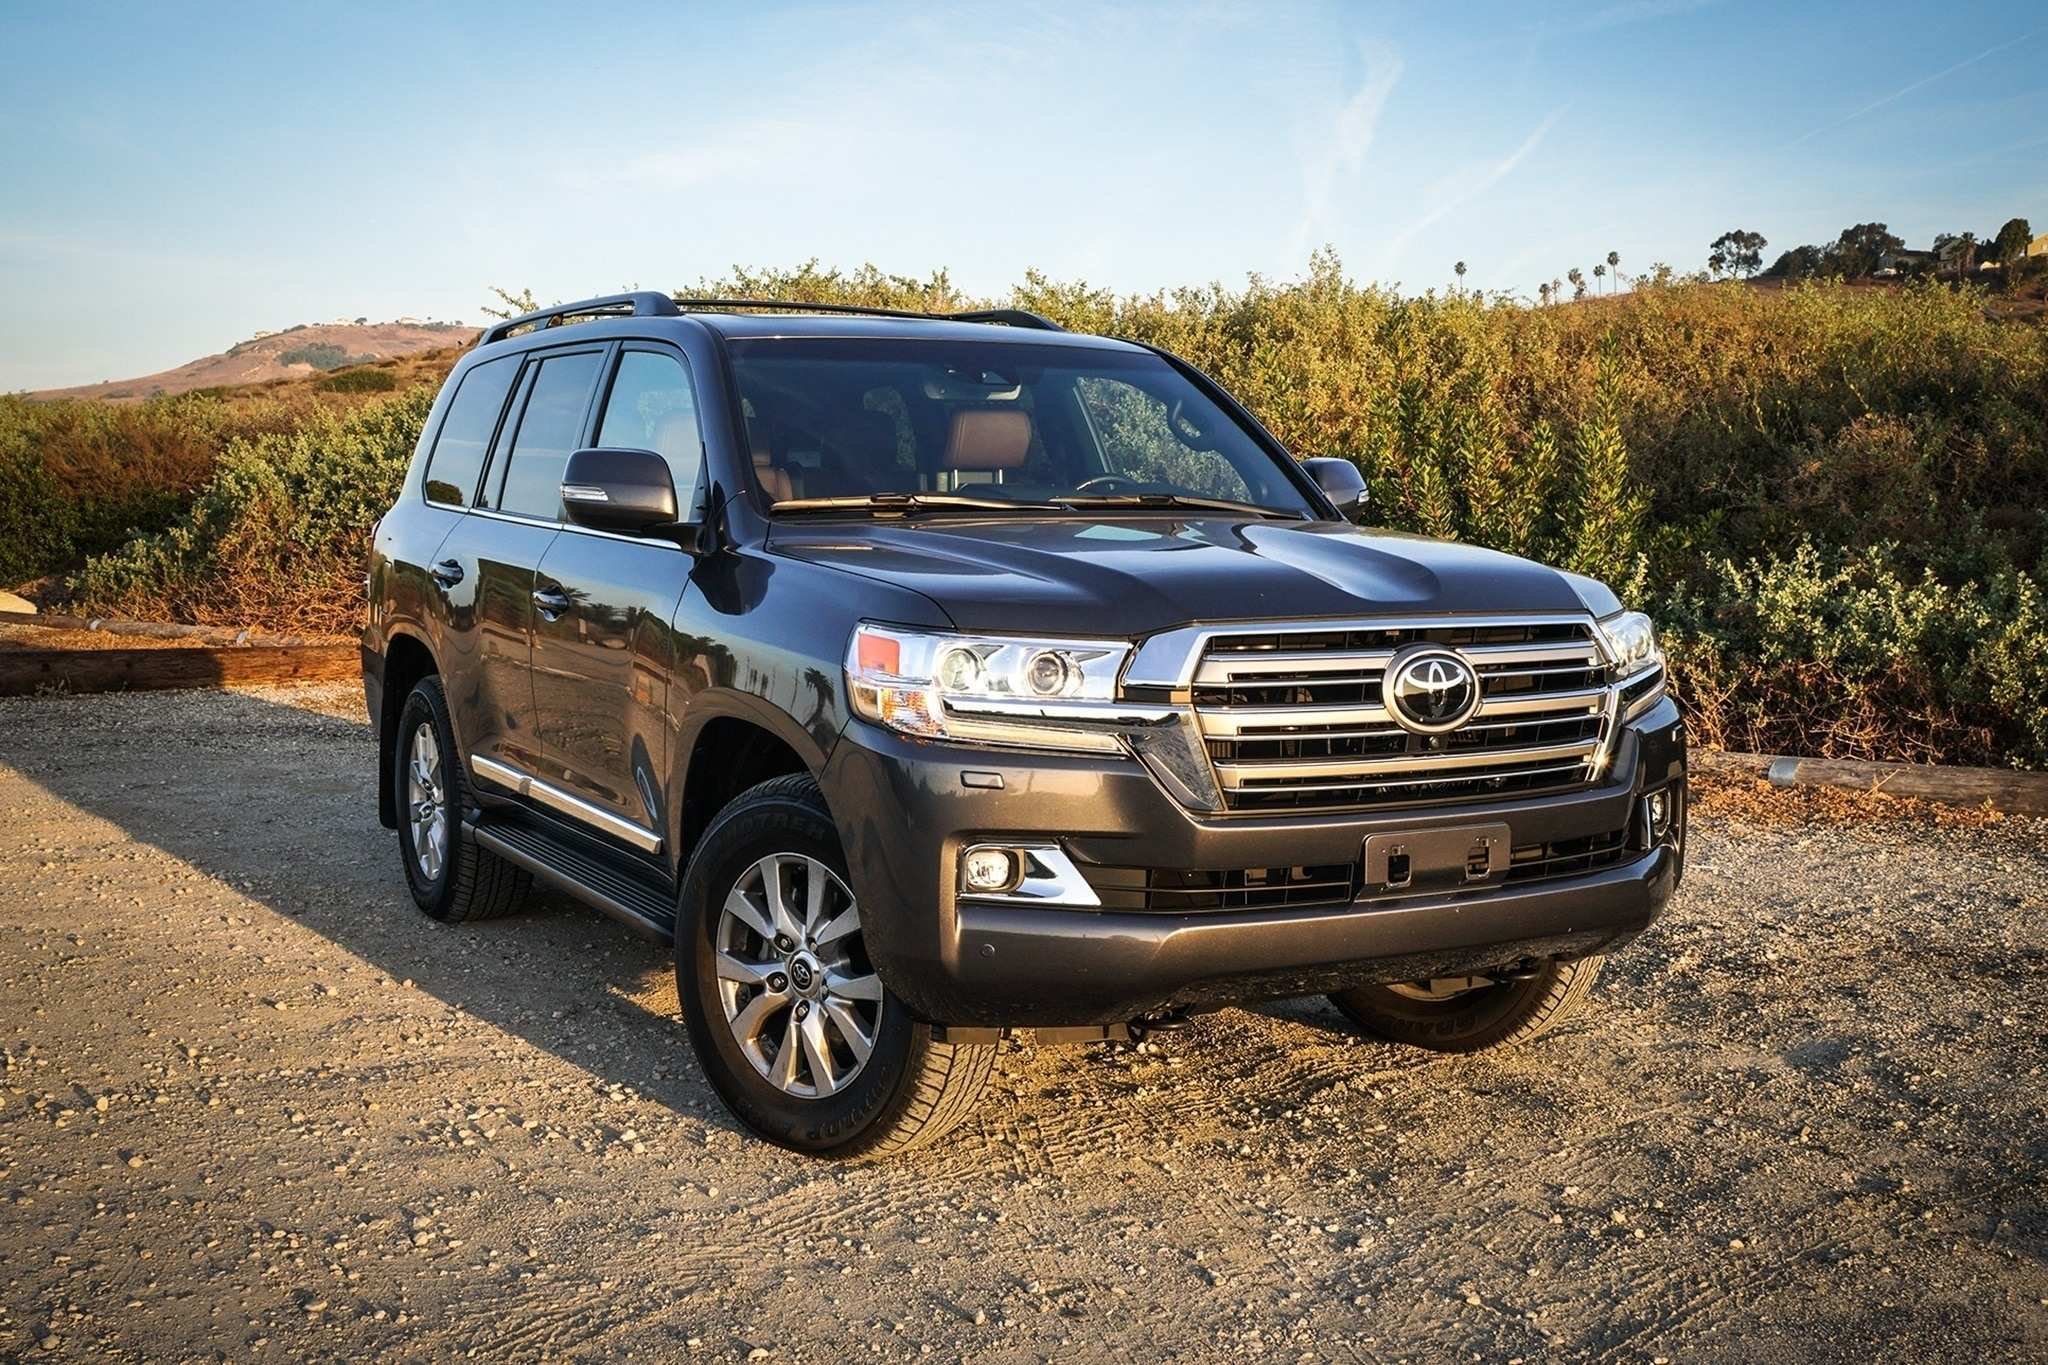 98 Great 2020 Toyota Land Cruiser 200 Engine with 2020 Toyota Land Cruiser 200